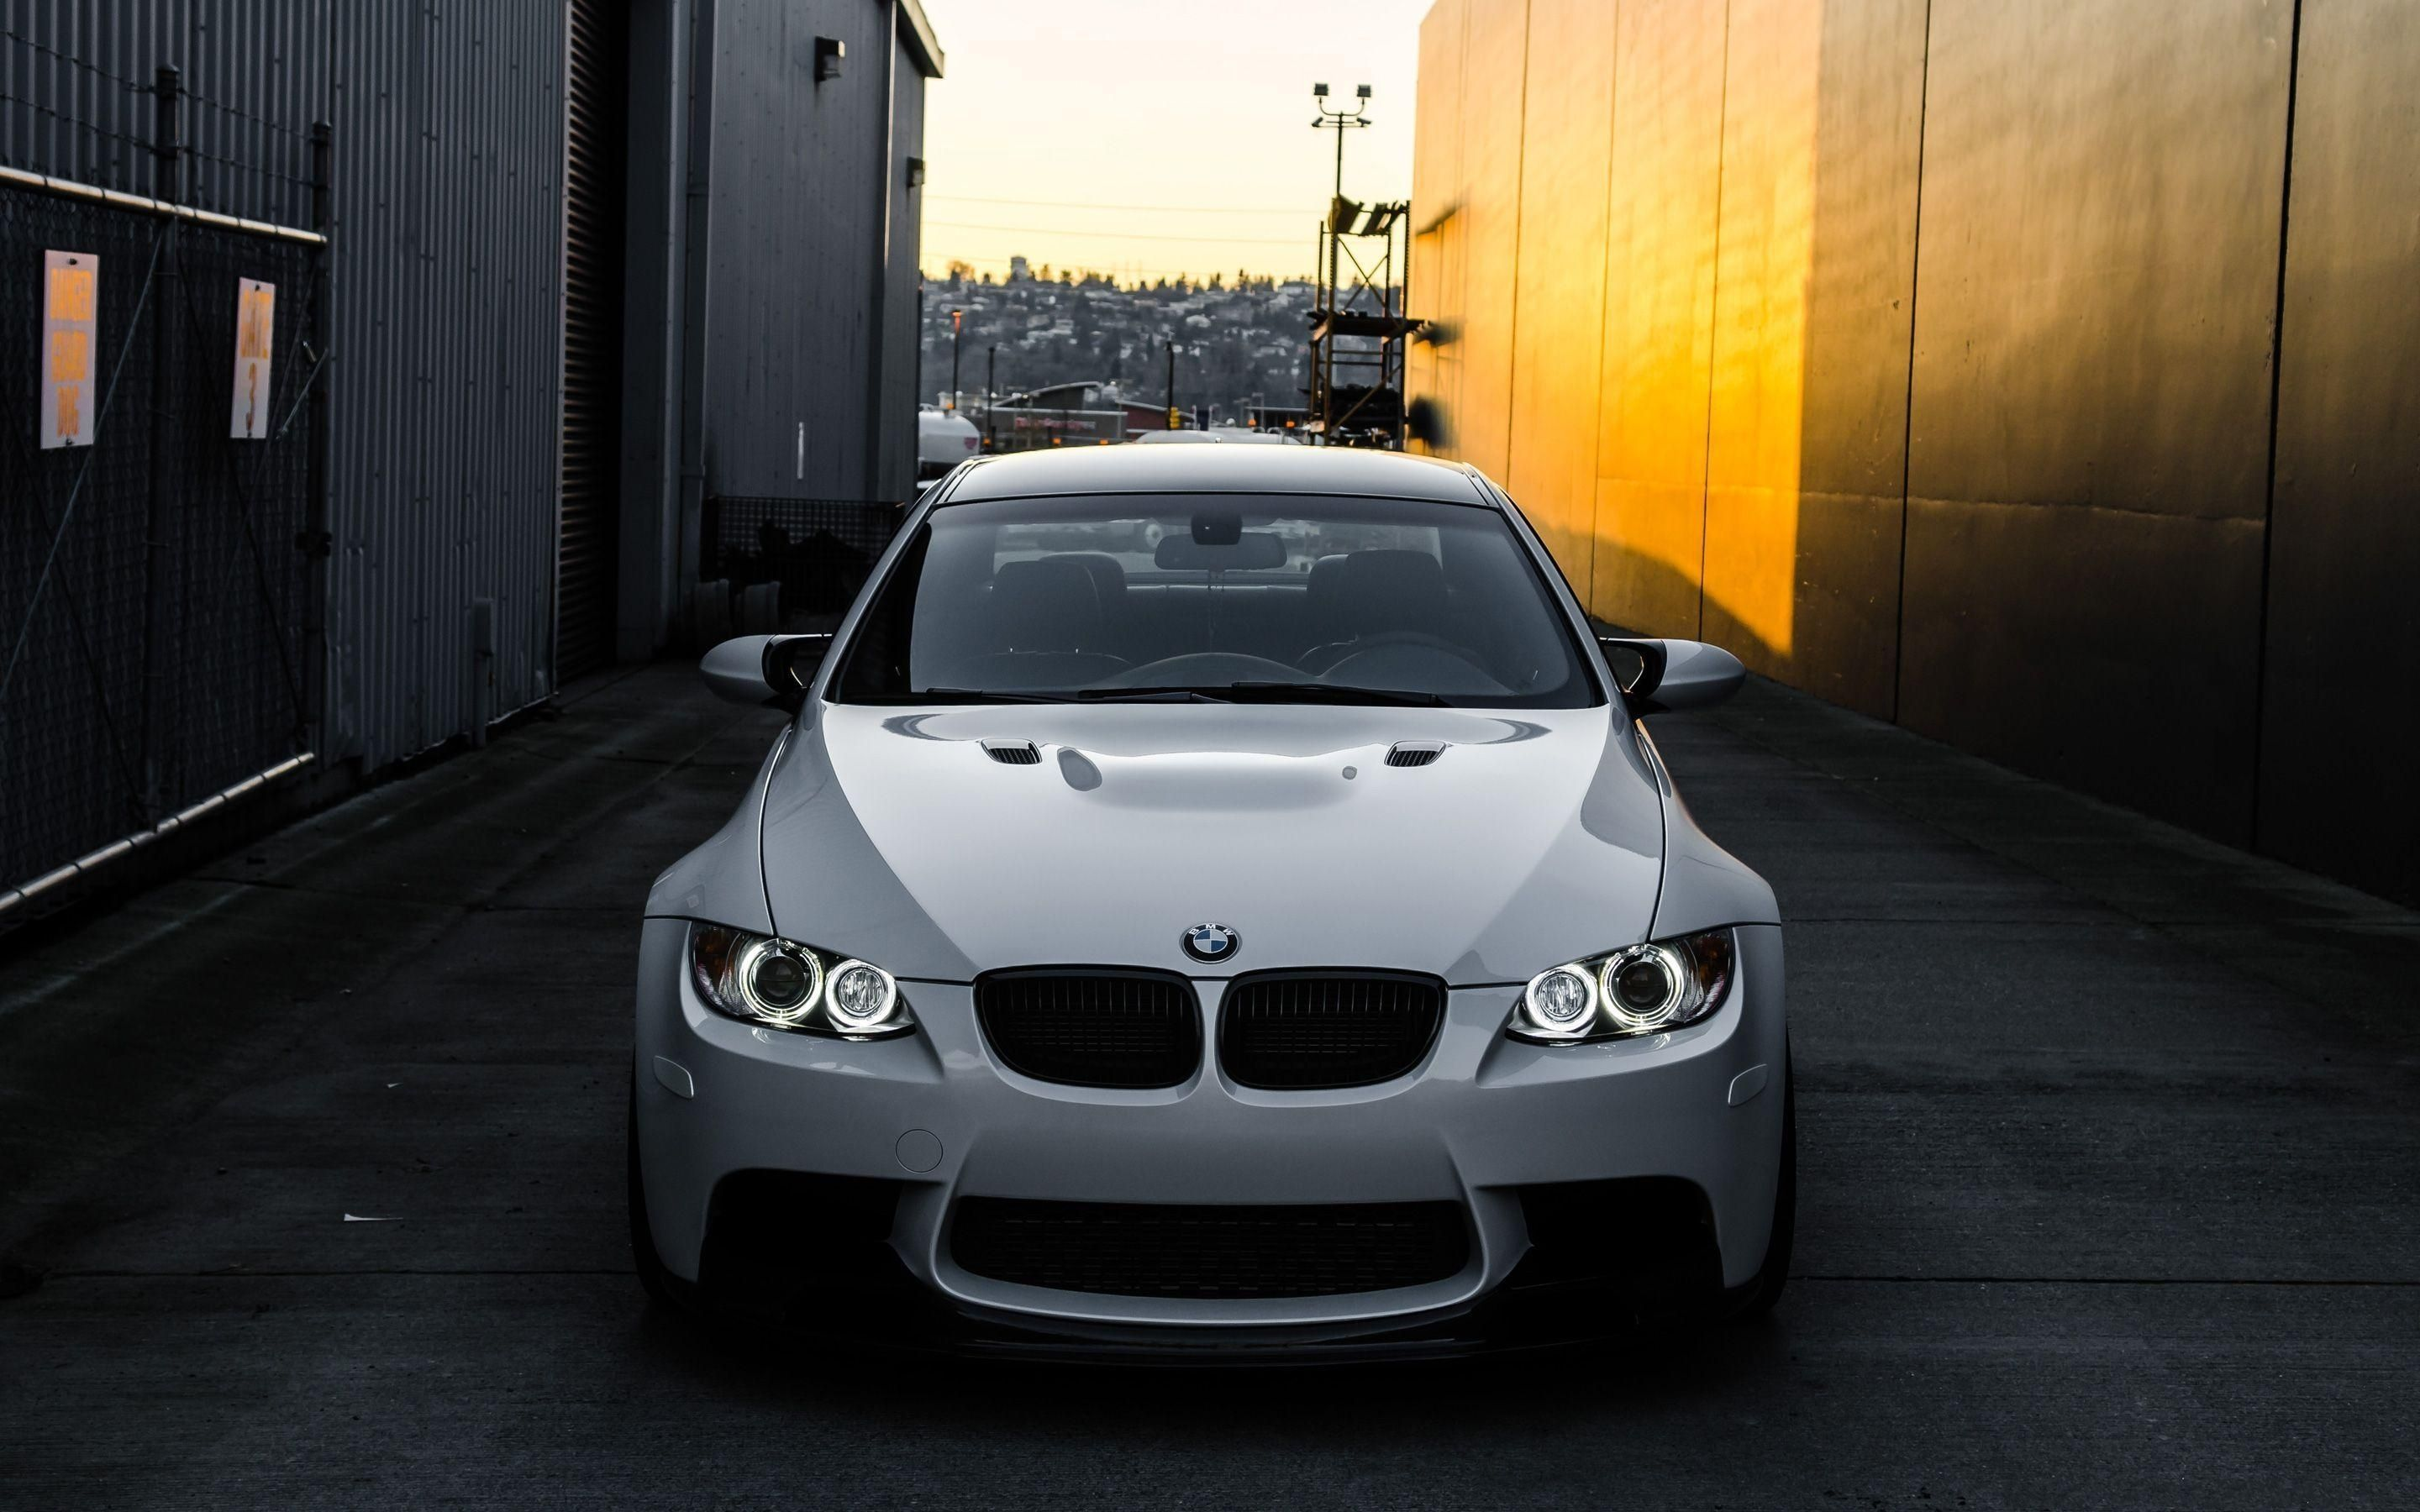 10 Latest Bmw M3 Wallpaper Hd Full Hd 1080p For Pc